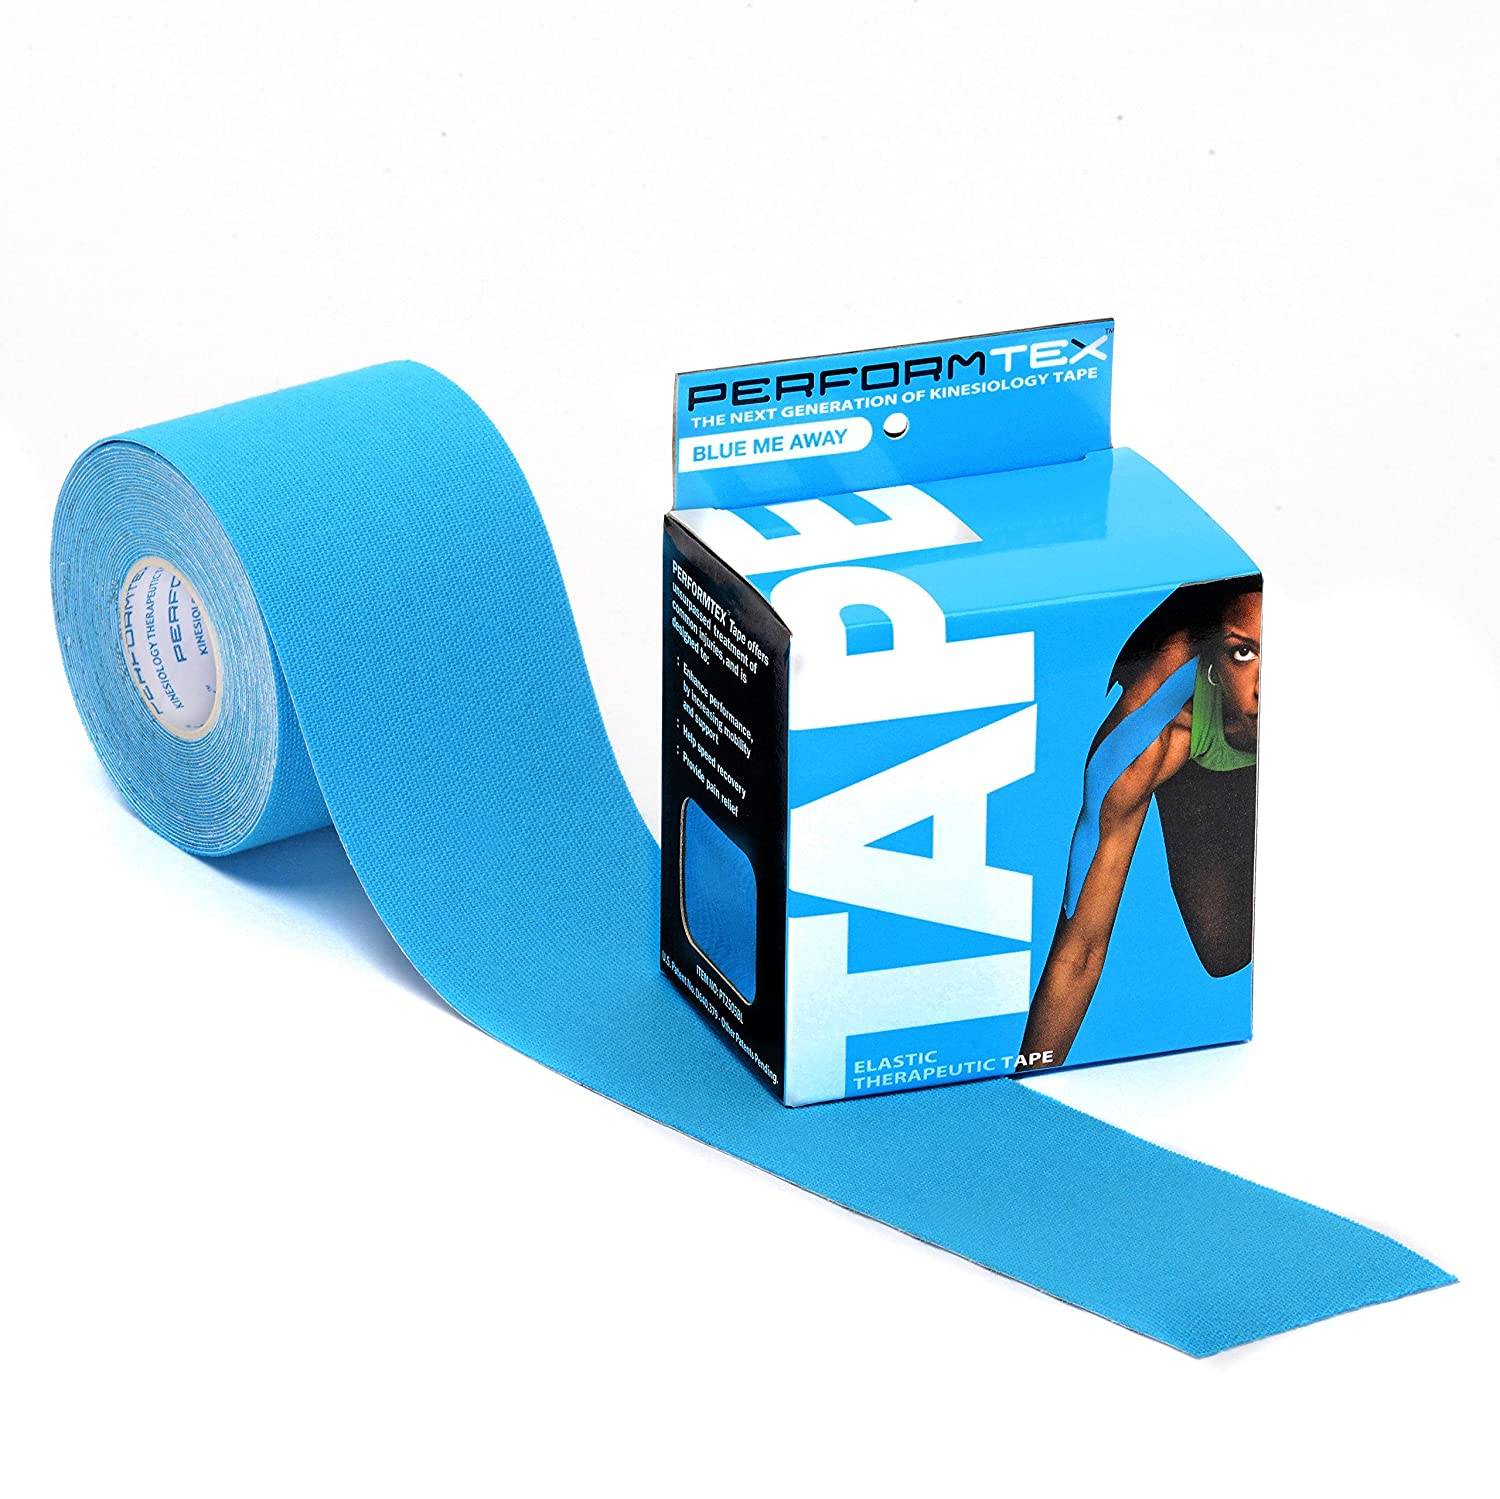 PerformTex Kinesiology Therapeutic Tape: Single Rolls - Blue Me Away by PerformTex B01AYCSX8E